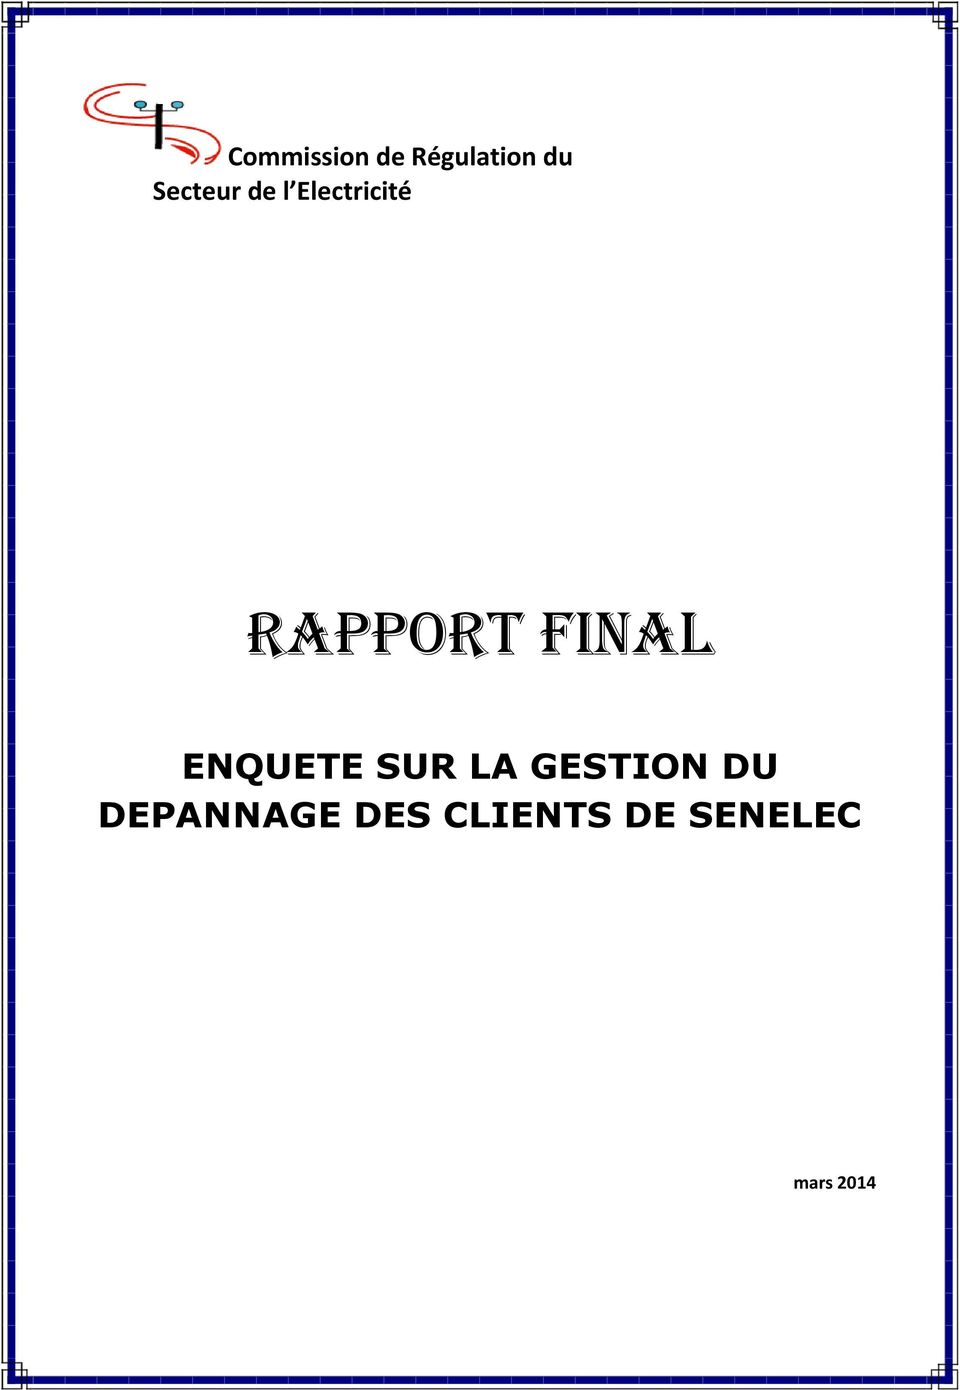 final ENQUETE SUR LA GESTION DU